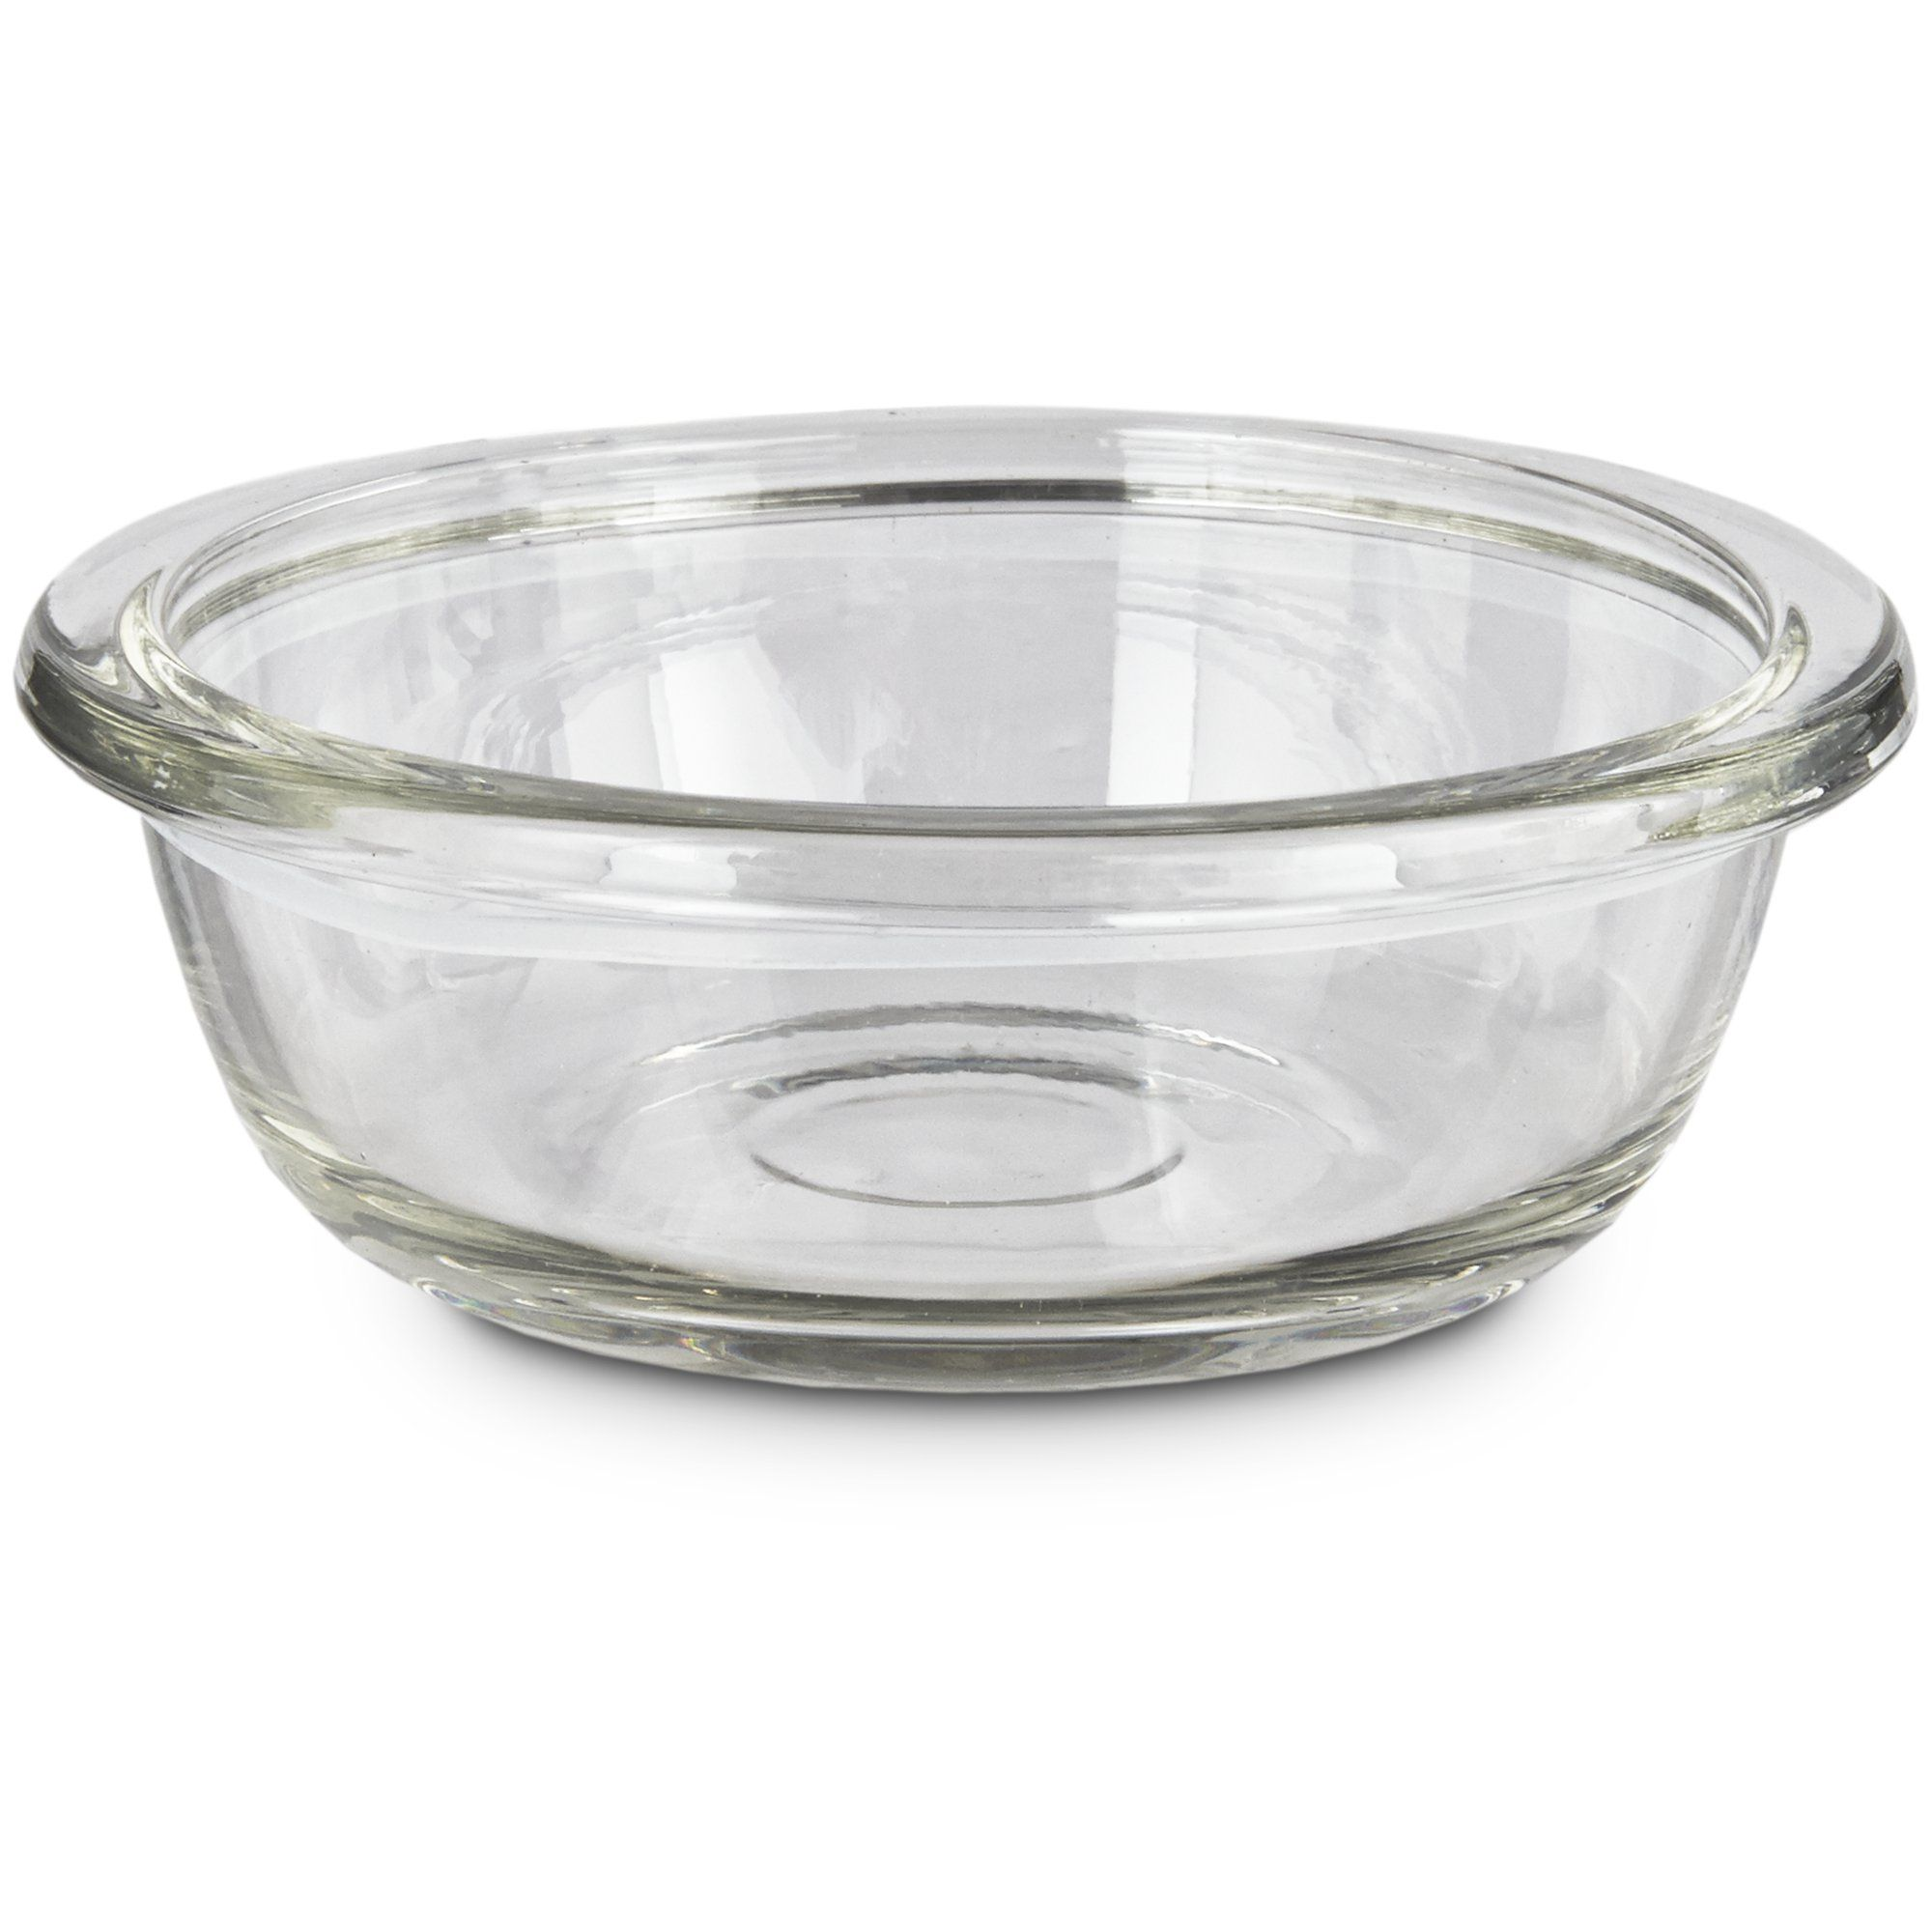 Bowlmates By Petco Glass Bowl Insert 0 75 Cup X Small